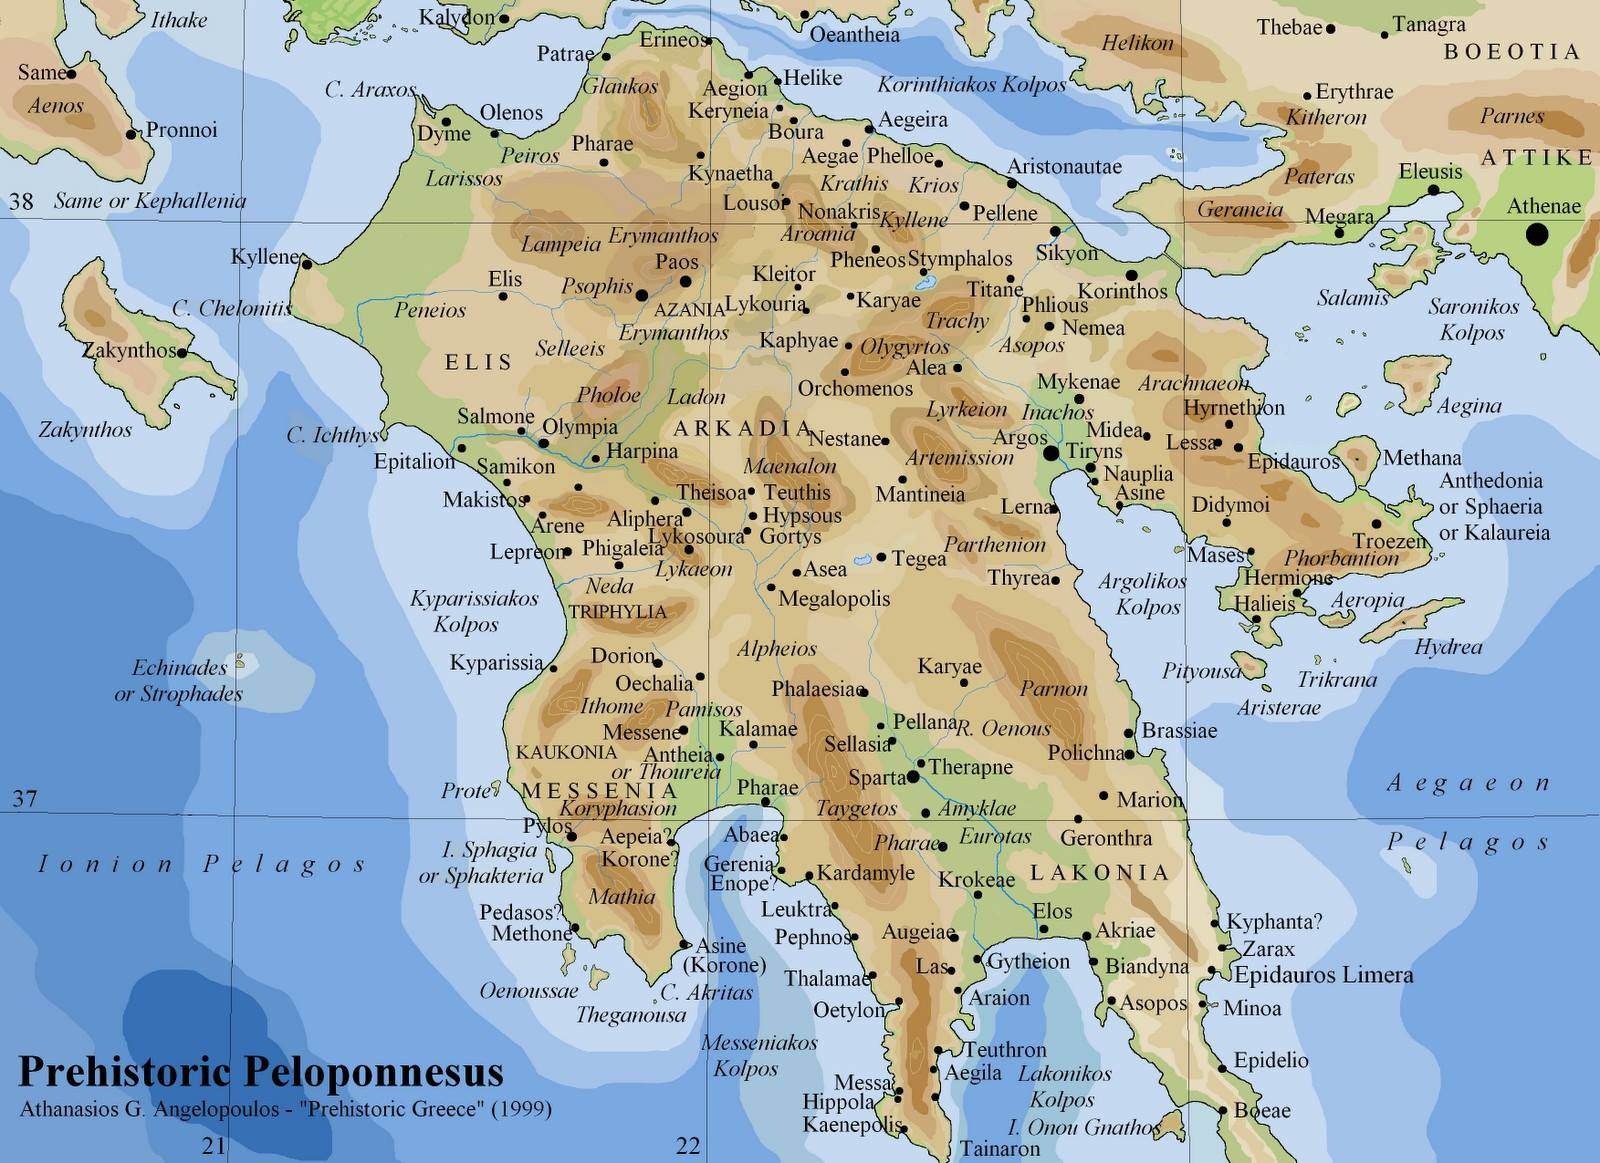 https://vignette.wikia.nocookie.net/science/images/3/3e/Maps-Peloponnesus-00-goog.jpg/revision/latest?cb=20150911143812&path-prefix=el